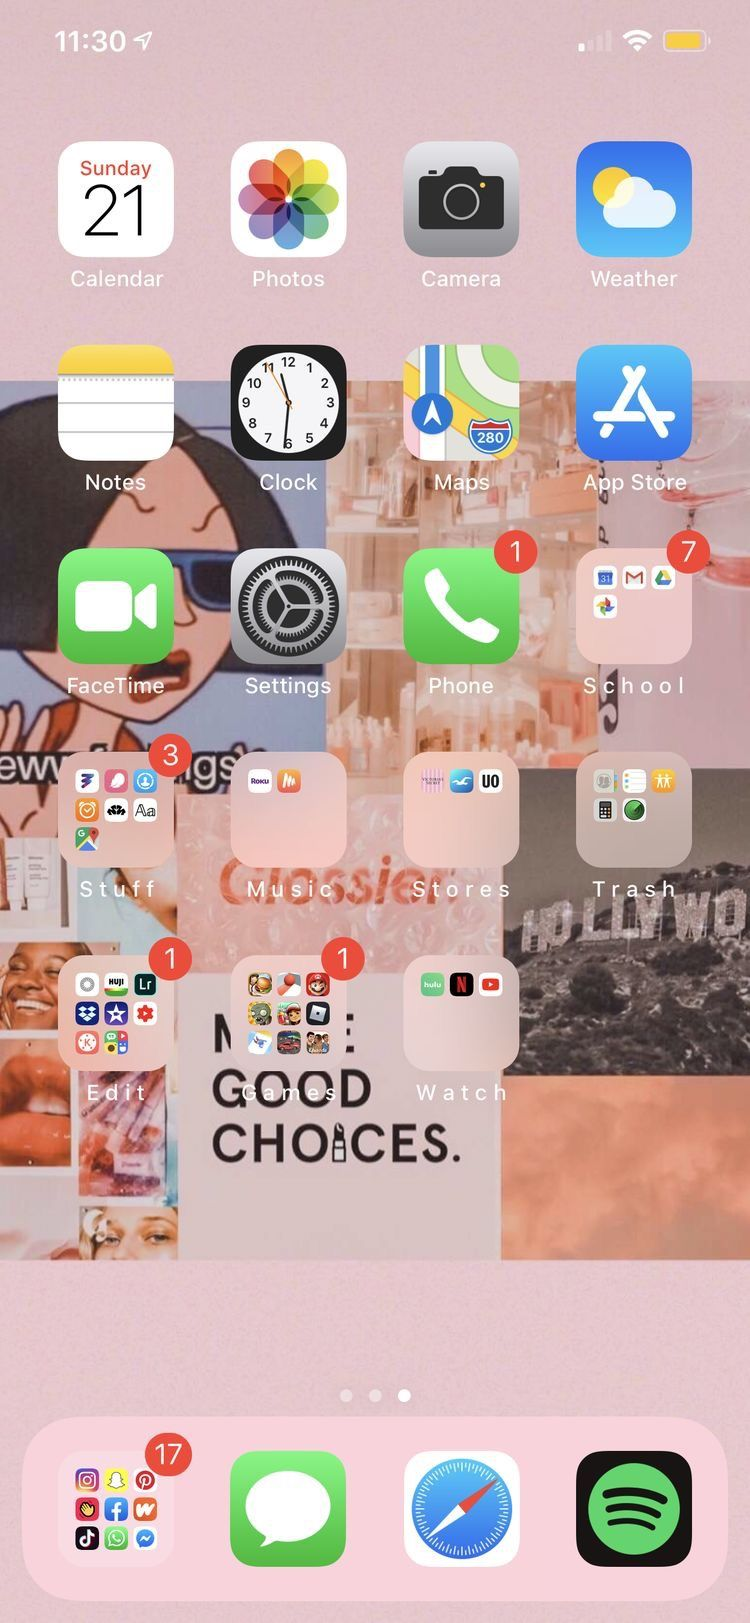 Pin by michele ) on iphone layouts Iphone organization